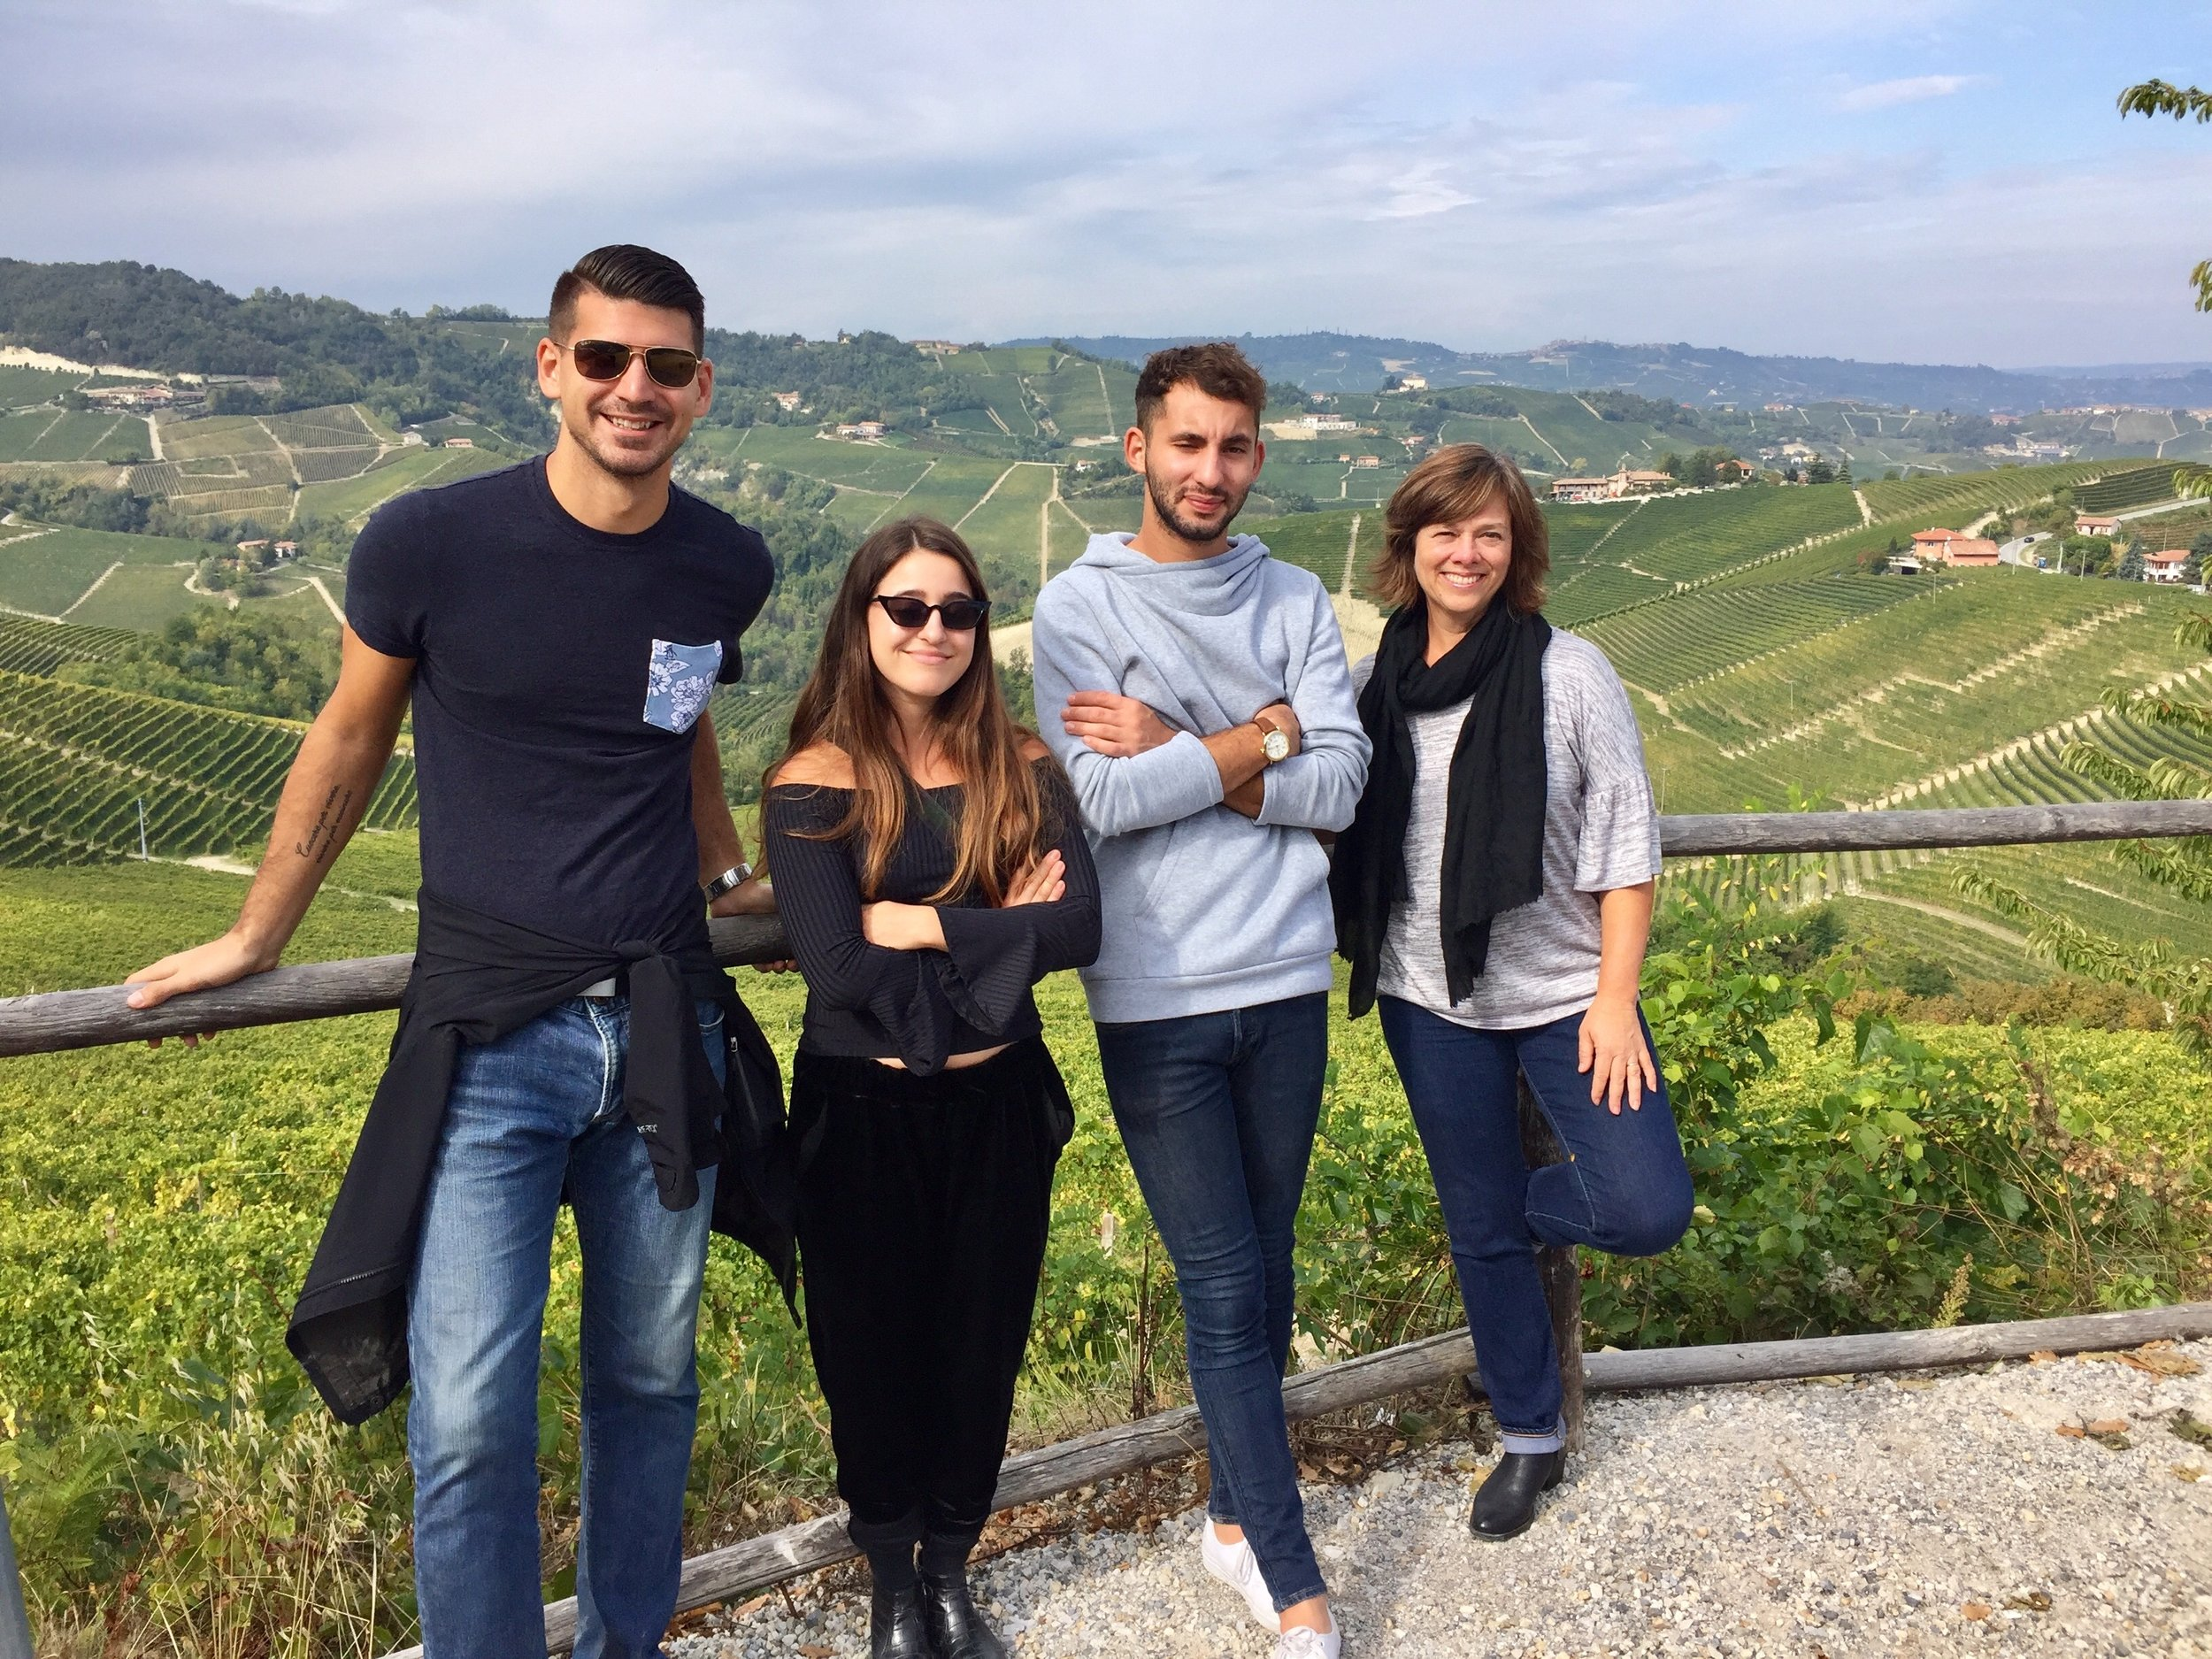 Nieko, Idan, Jonah, and Betsy touring the Barolo region with the Serralunga hills covered in vines